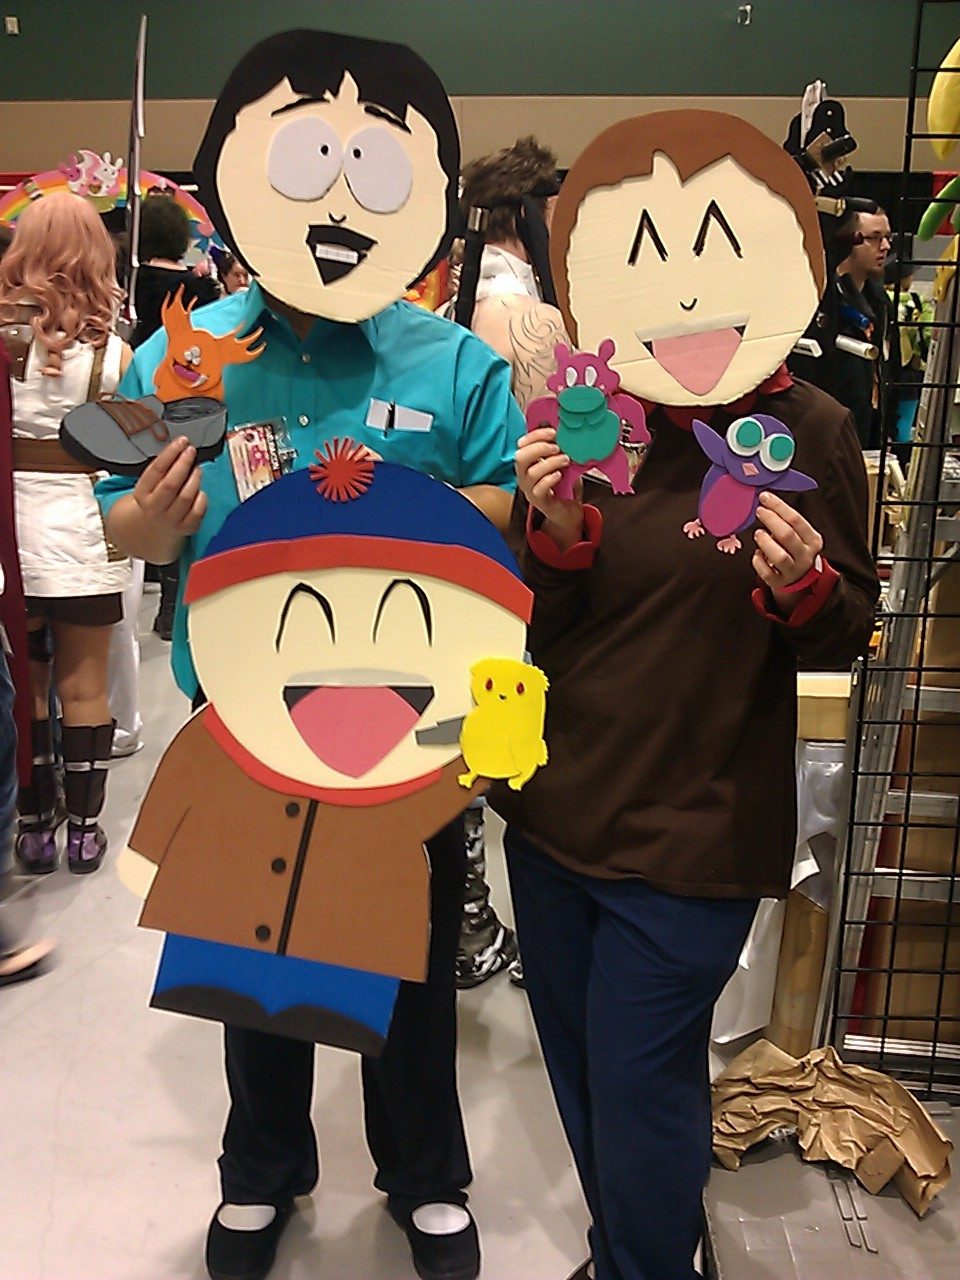 Epic South Park cutout cosplay